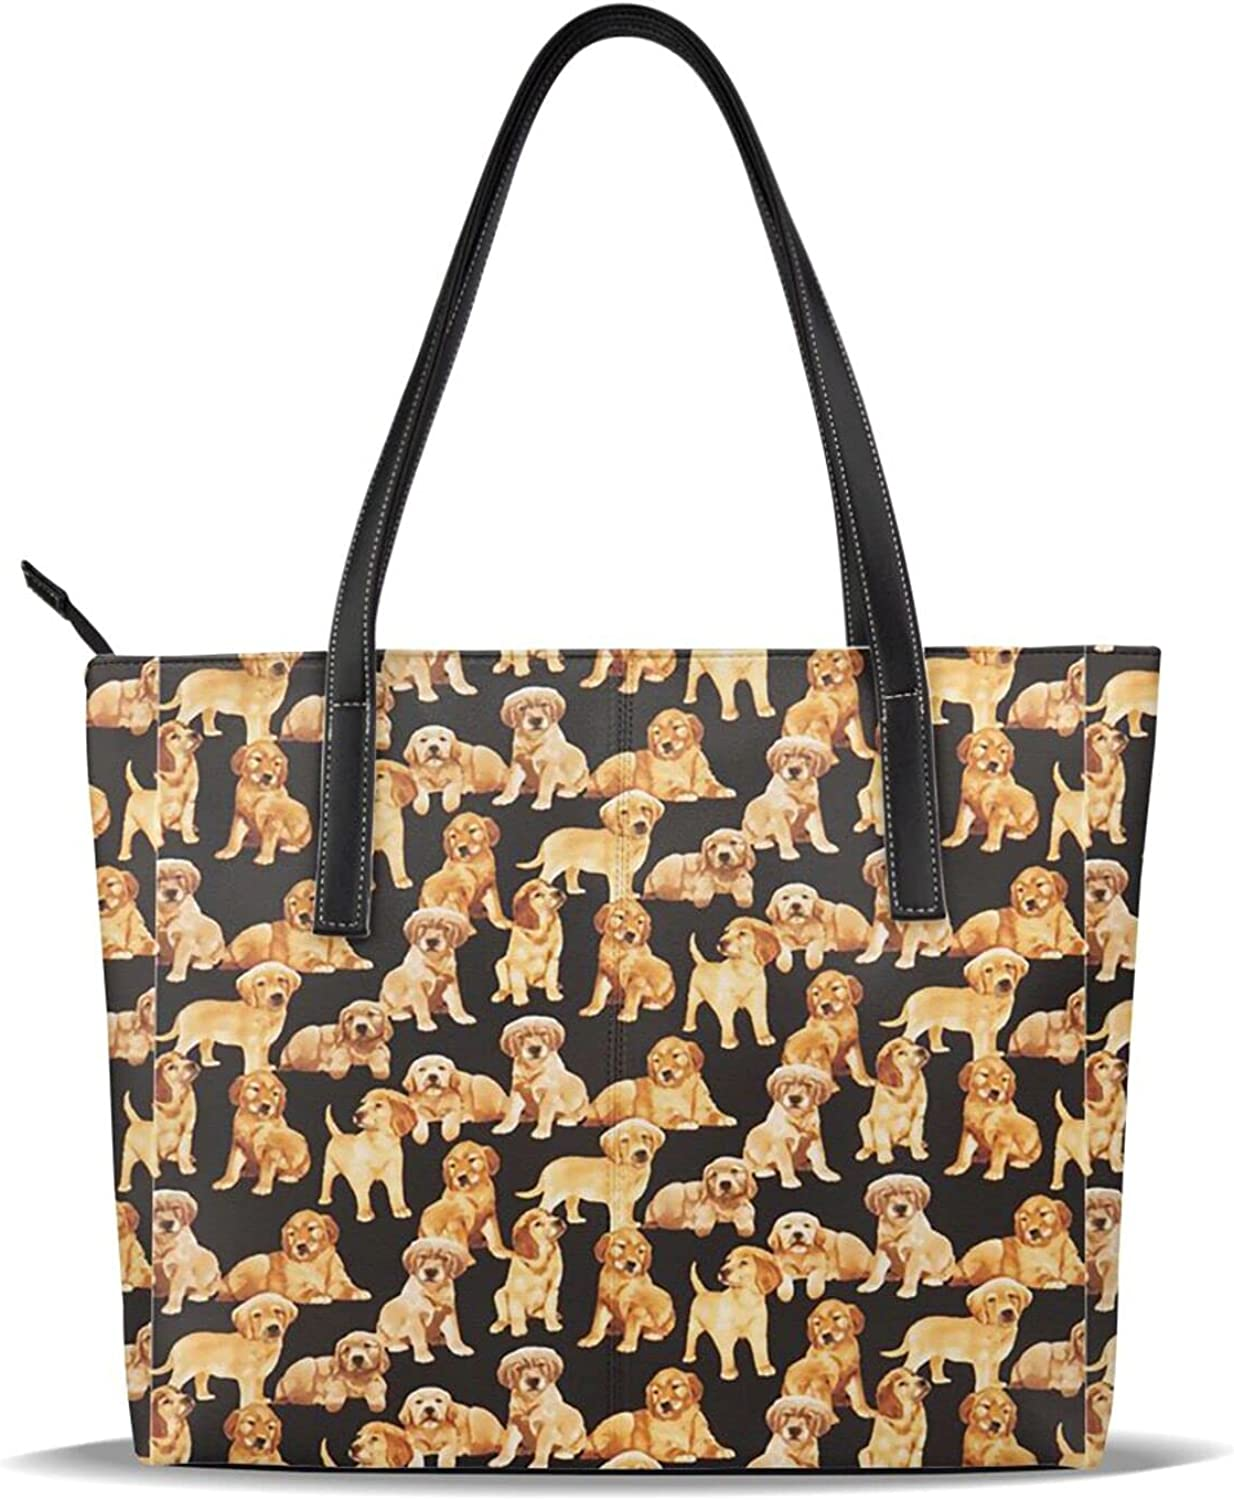 FSERSANHW Puppy Dog Fashion Practical Large Tote Excellence Leather Bags Fo Tampa Mall